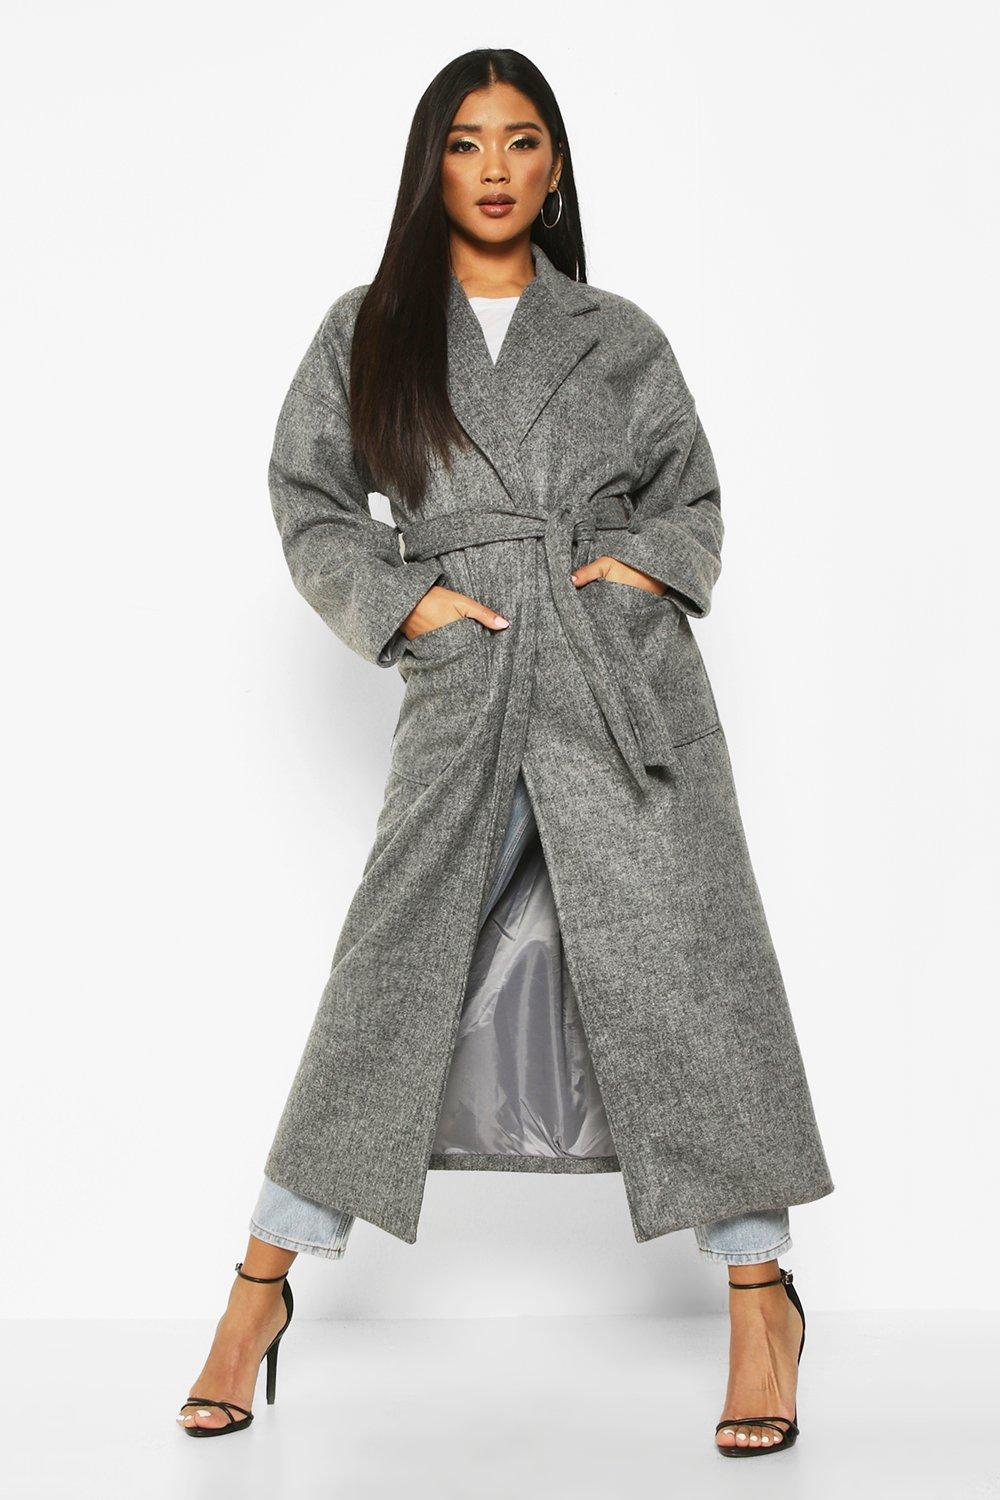 boohoo Womens Oversized Pocket Belted Maxi Wool Look Coat - Grey - 14, Grey